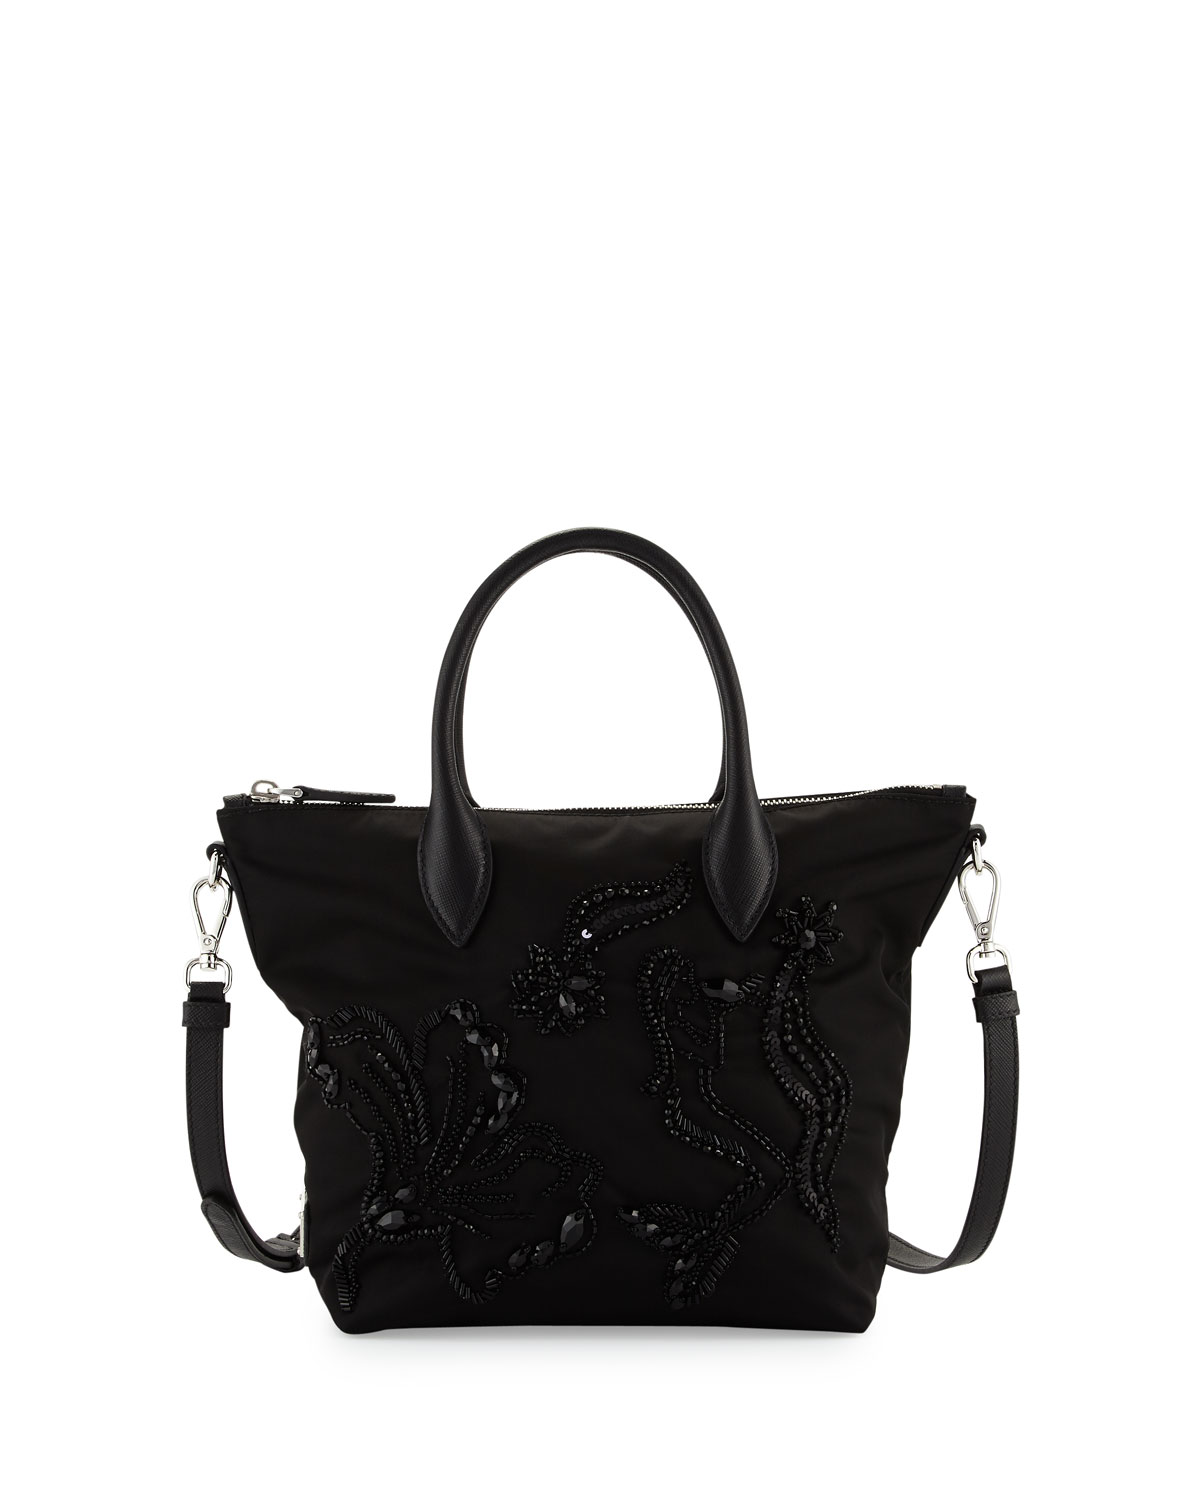 a6efb39e16be Prada Small Nylon Beaded Tote Bag, Black (Nero) | Neiman Marcus